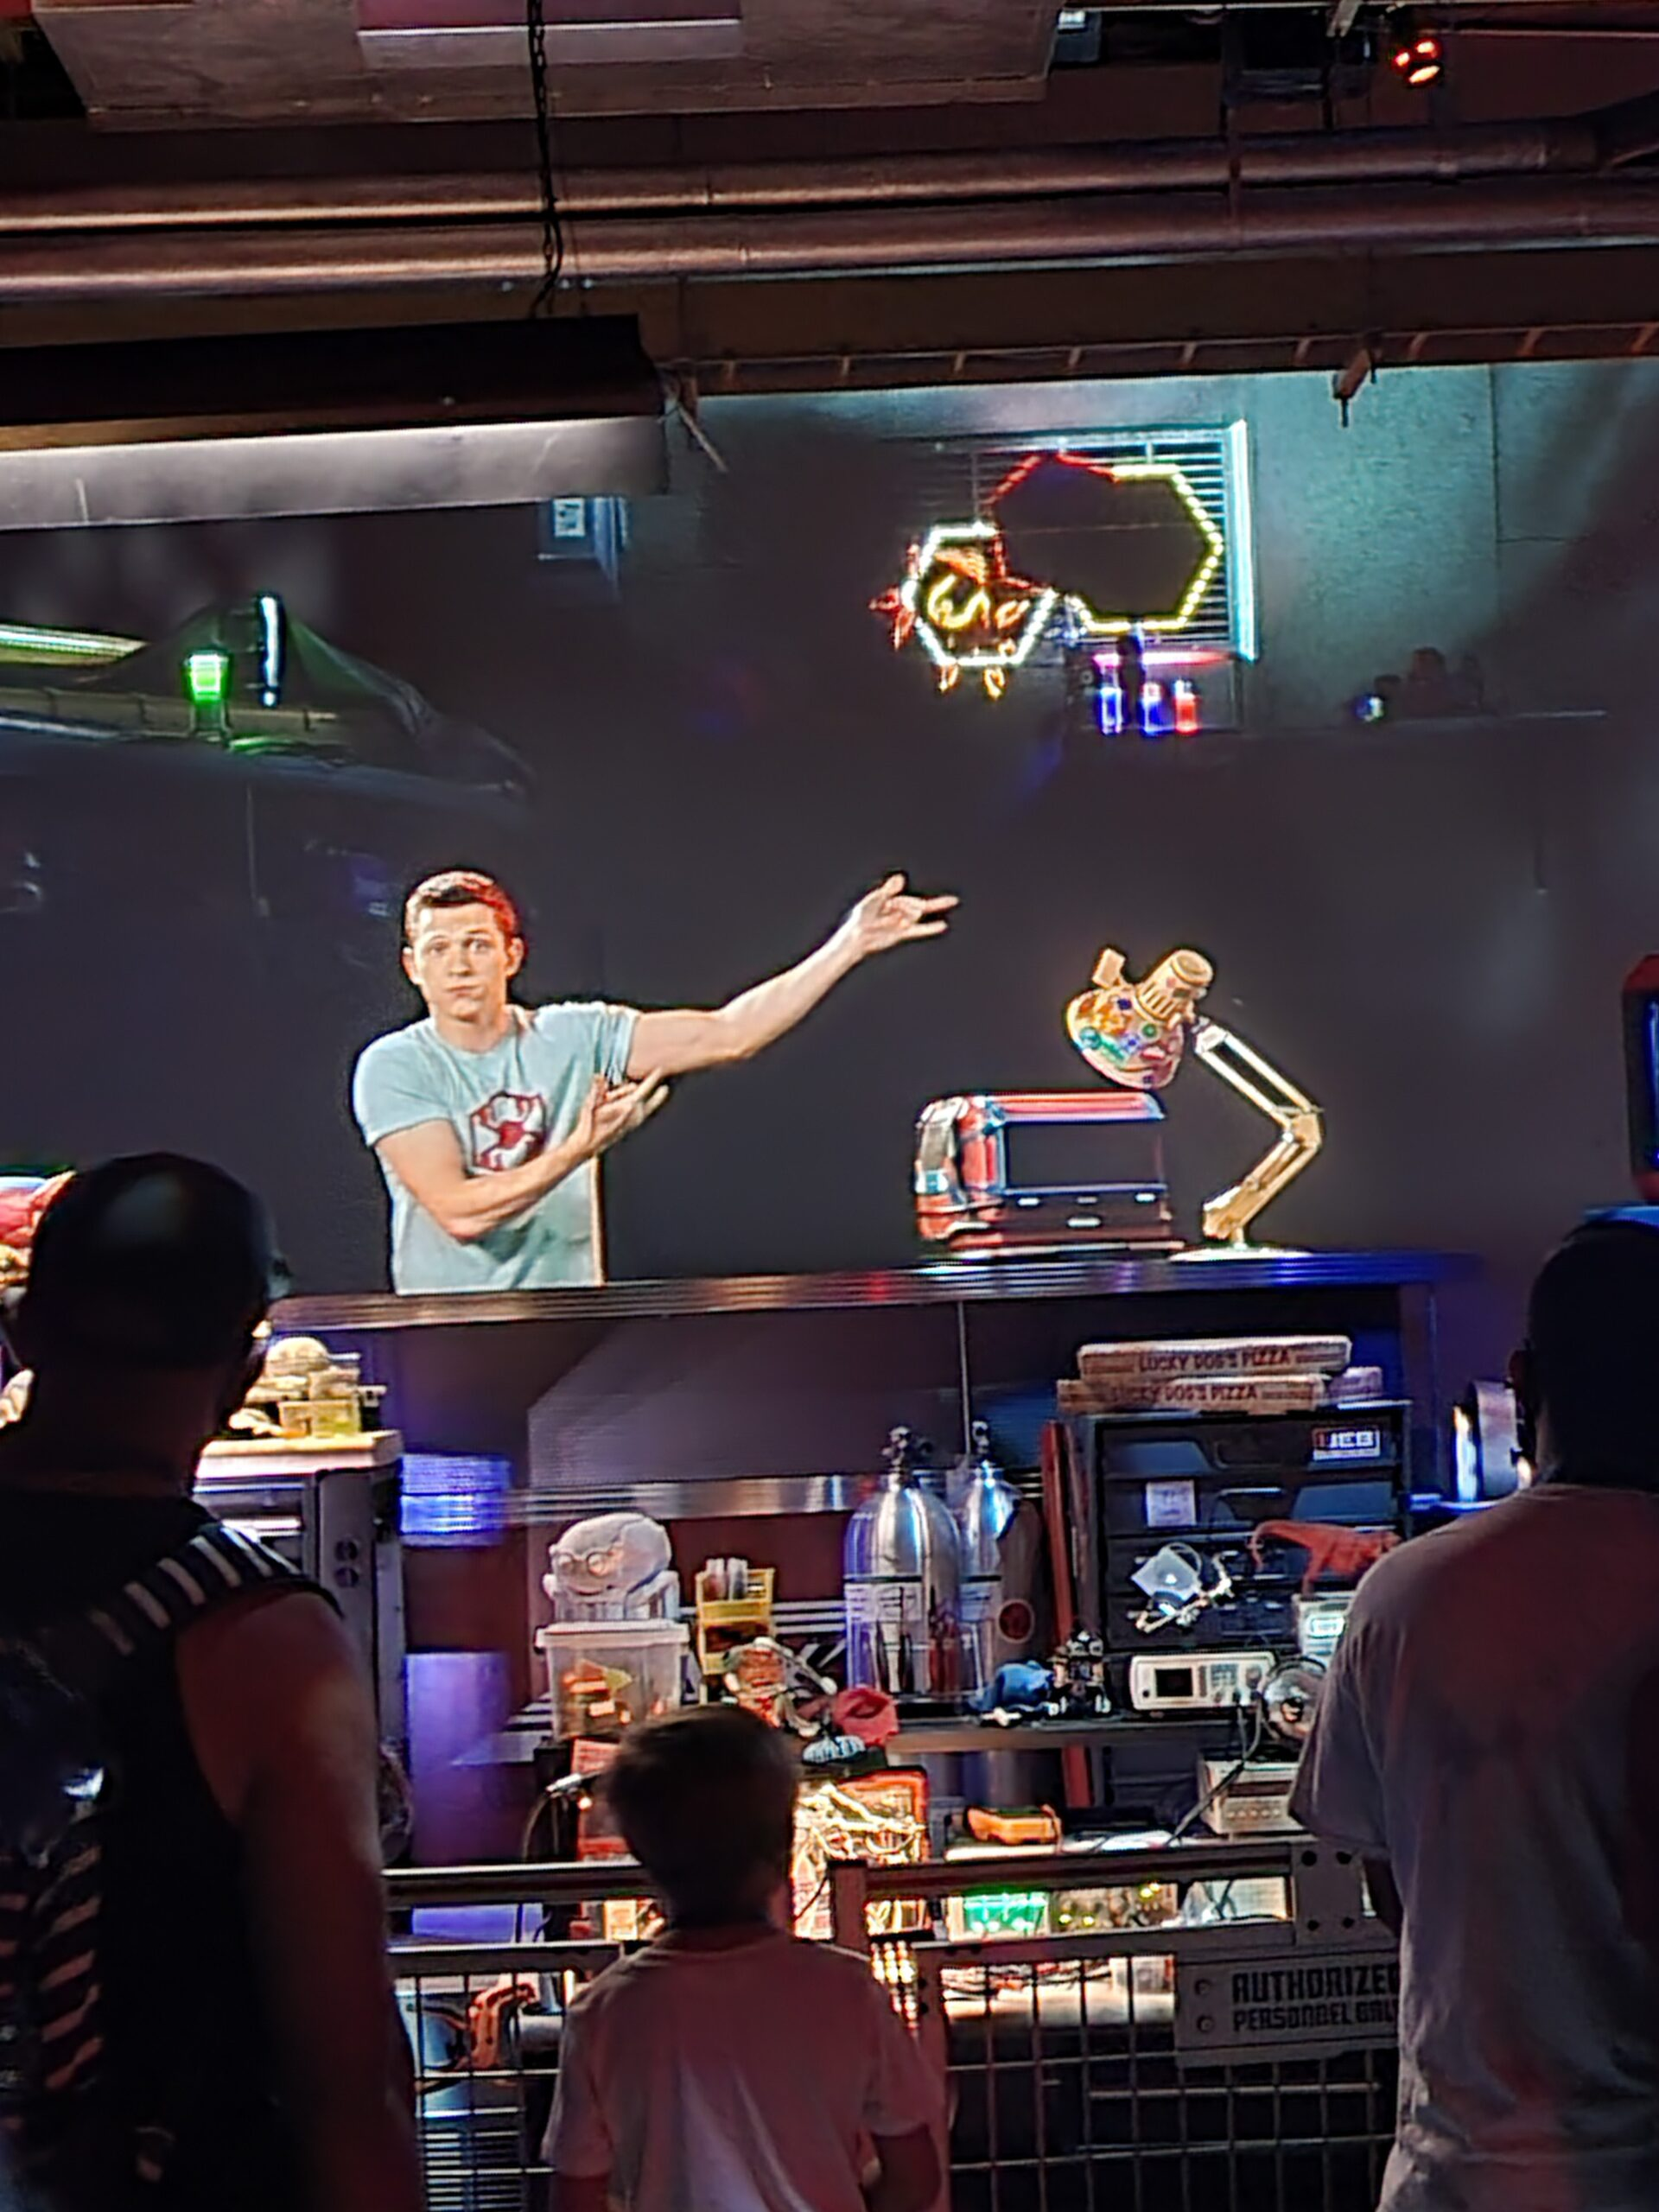 Tom Holland appears as Peter Parker in WEB SLINGERS: A Spider-Man Adventure at Avengers Campus Disneyland